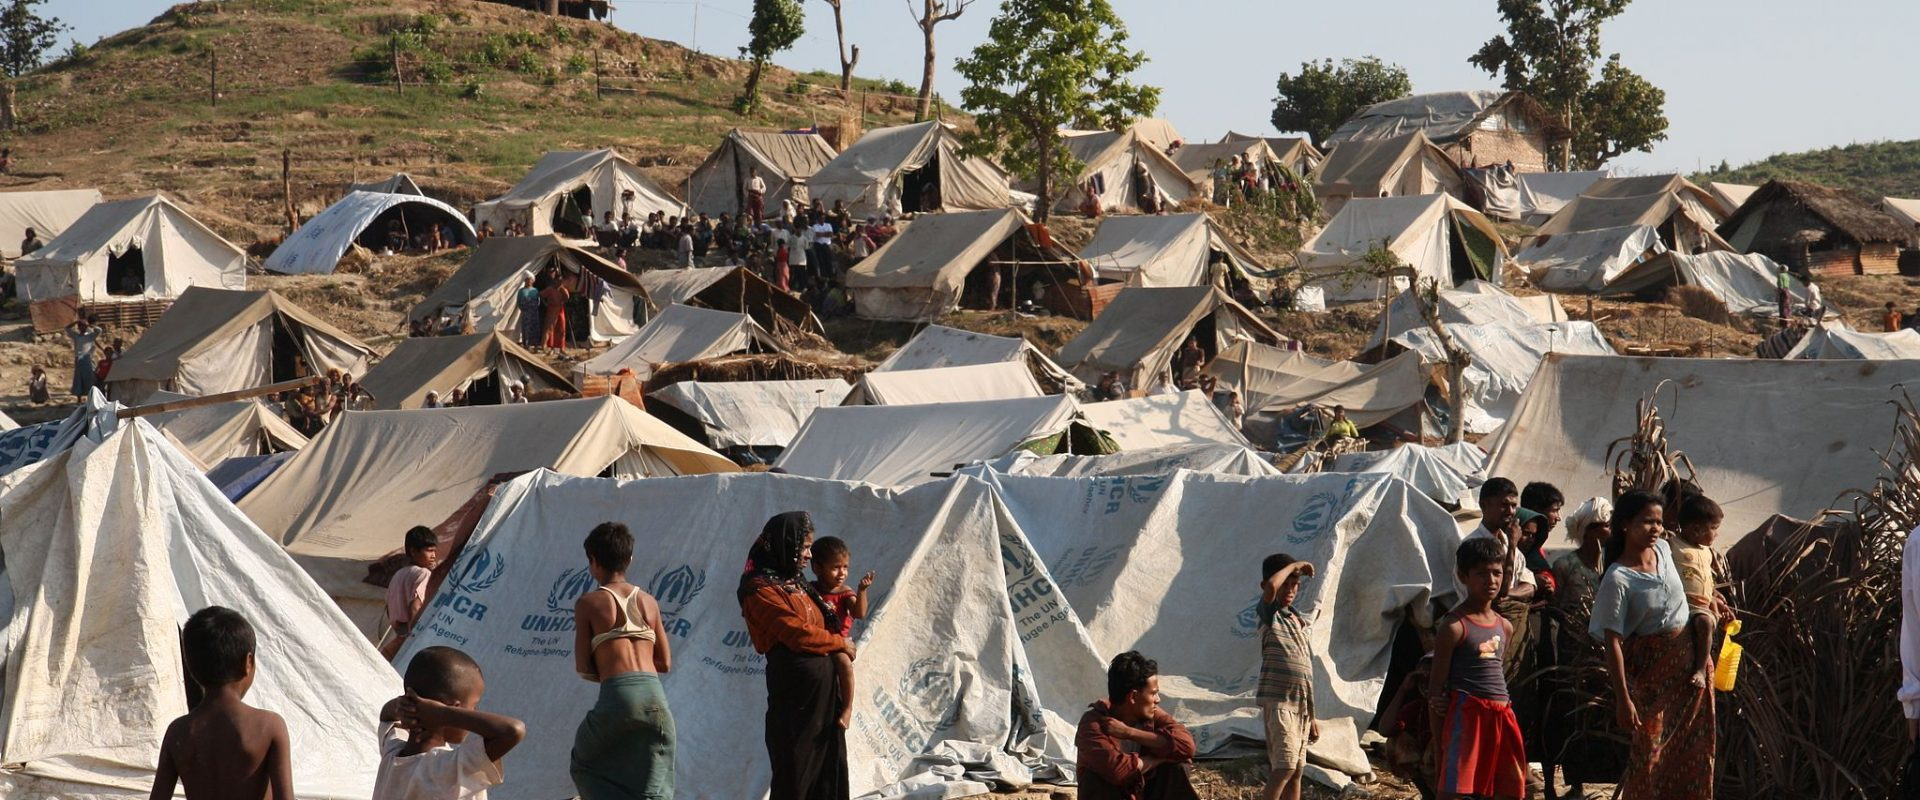 Permalink to: Stranglehold Refoulment: Fear of Constructively Forced Returns of Burmese Refugees as Consequence of Thailand's Combined Human Rights Violations